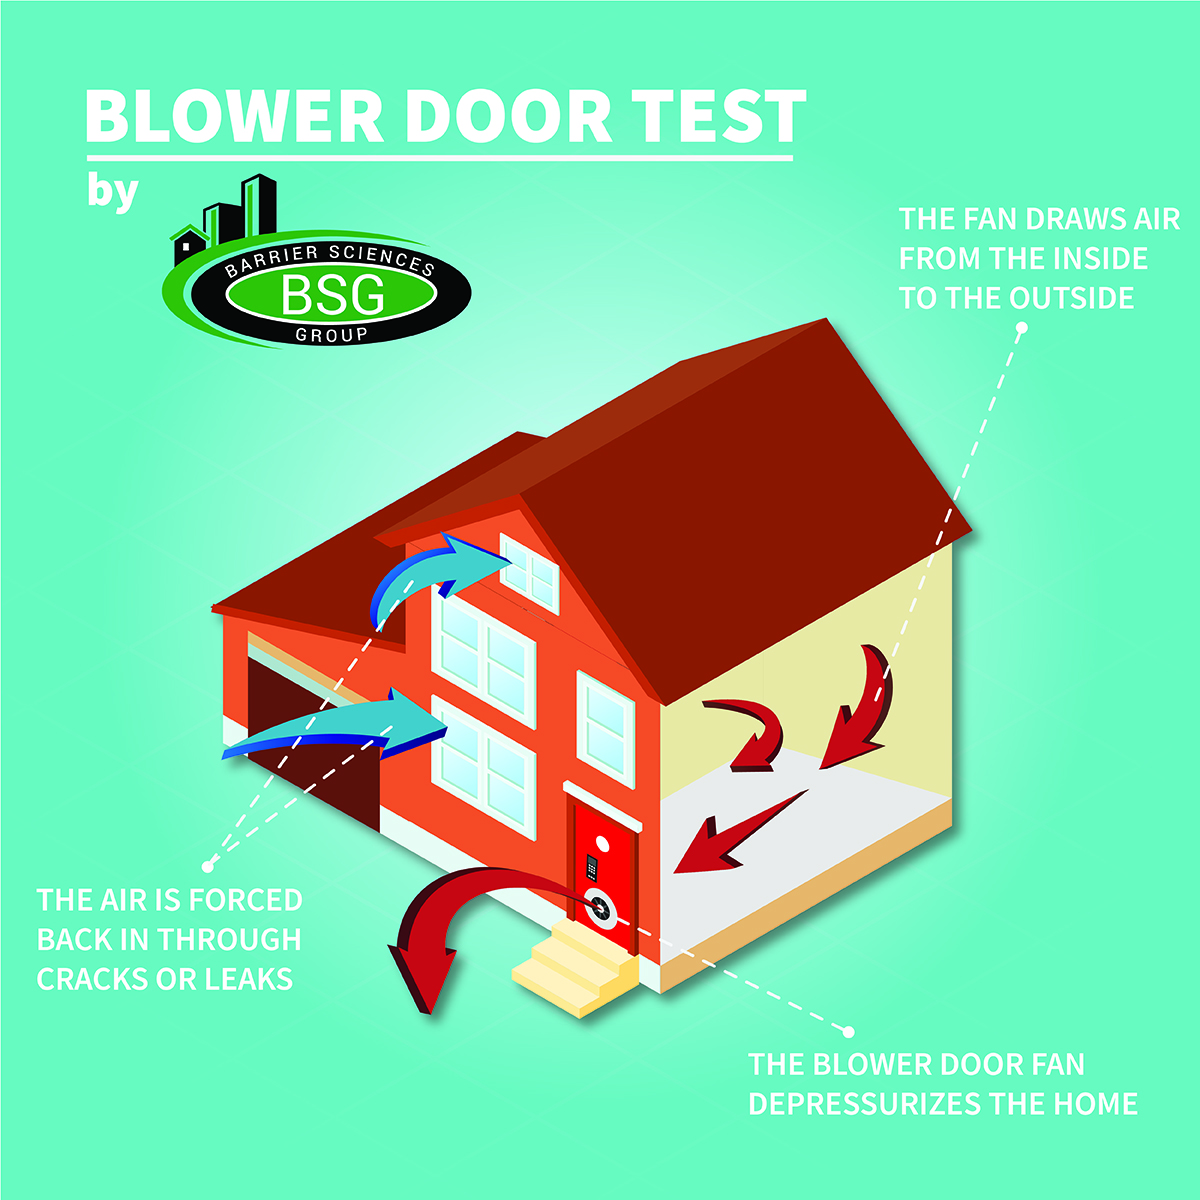 Blower door test frequently asked questions